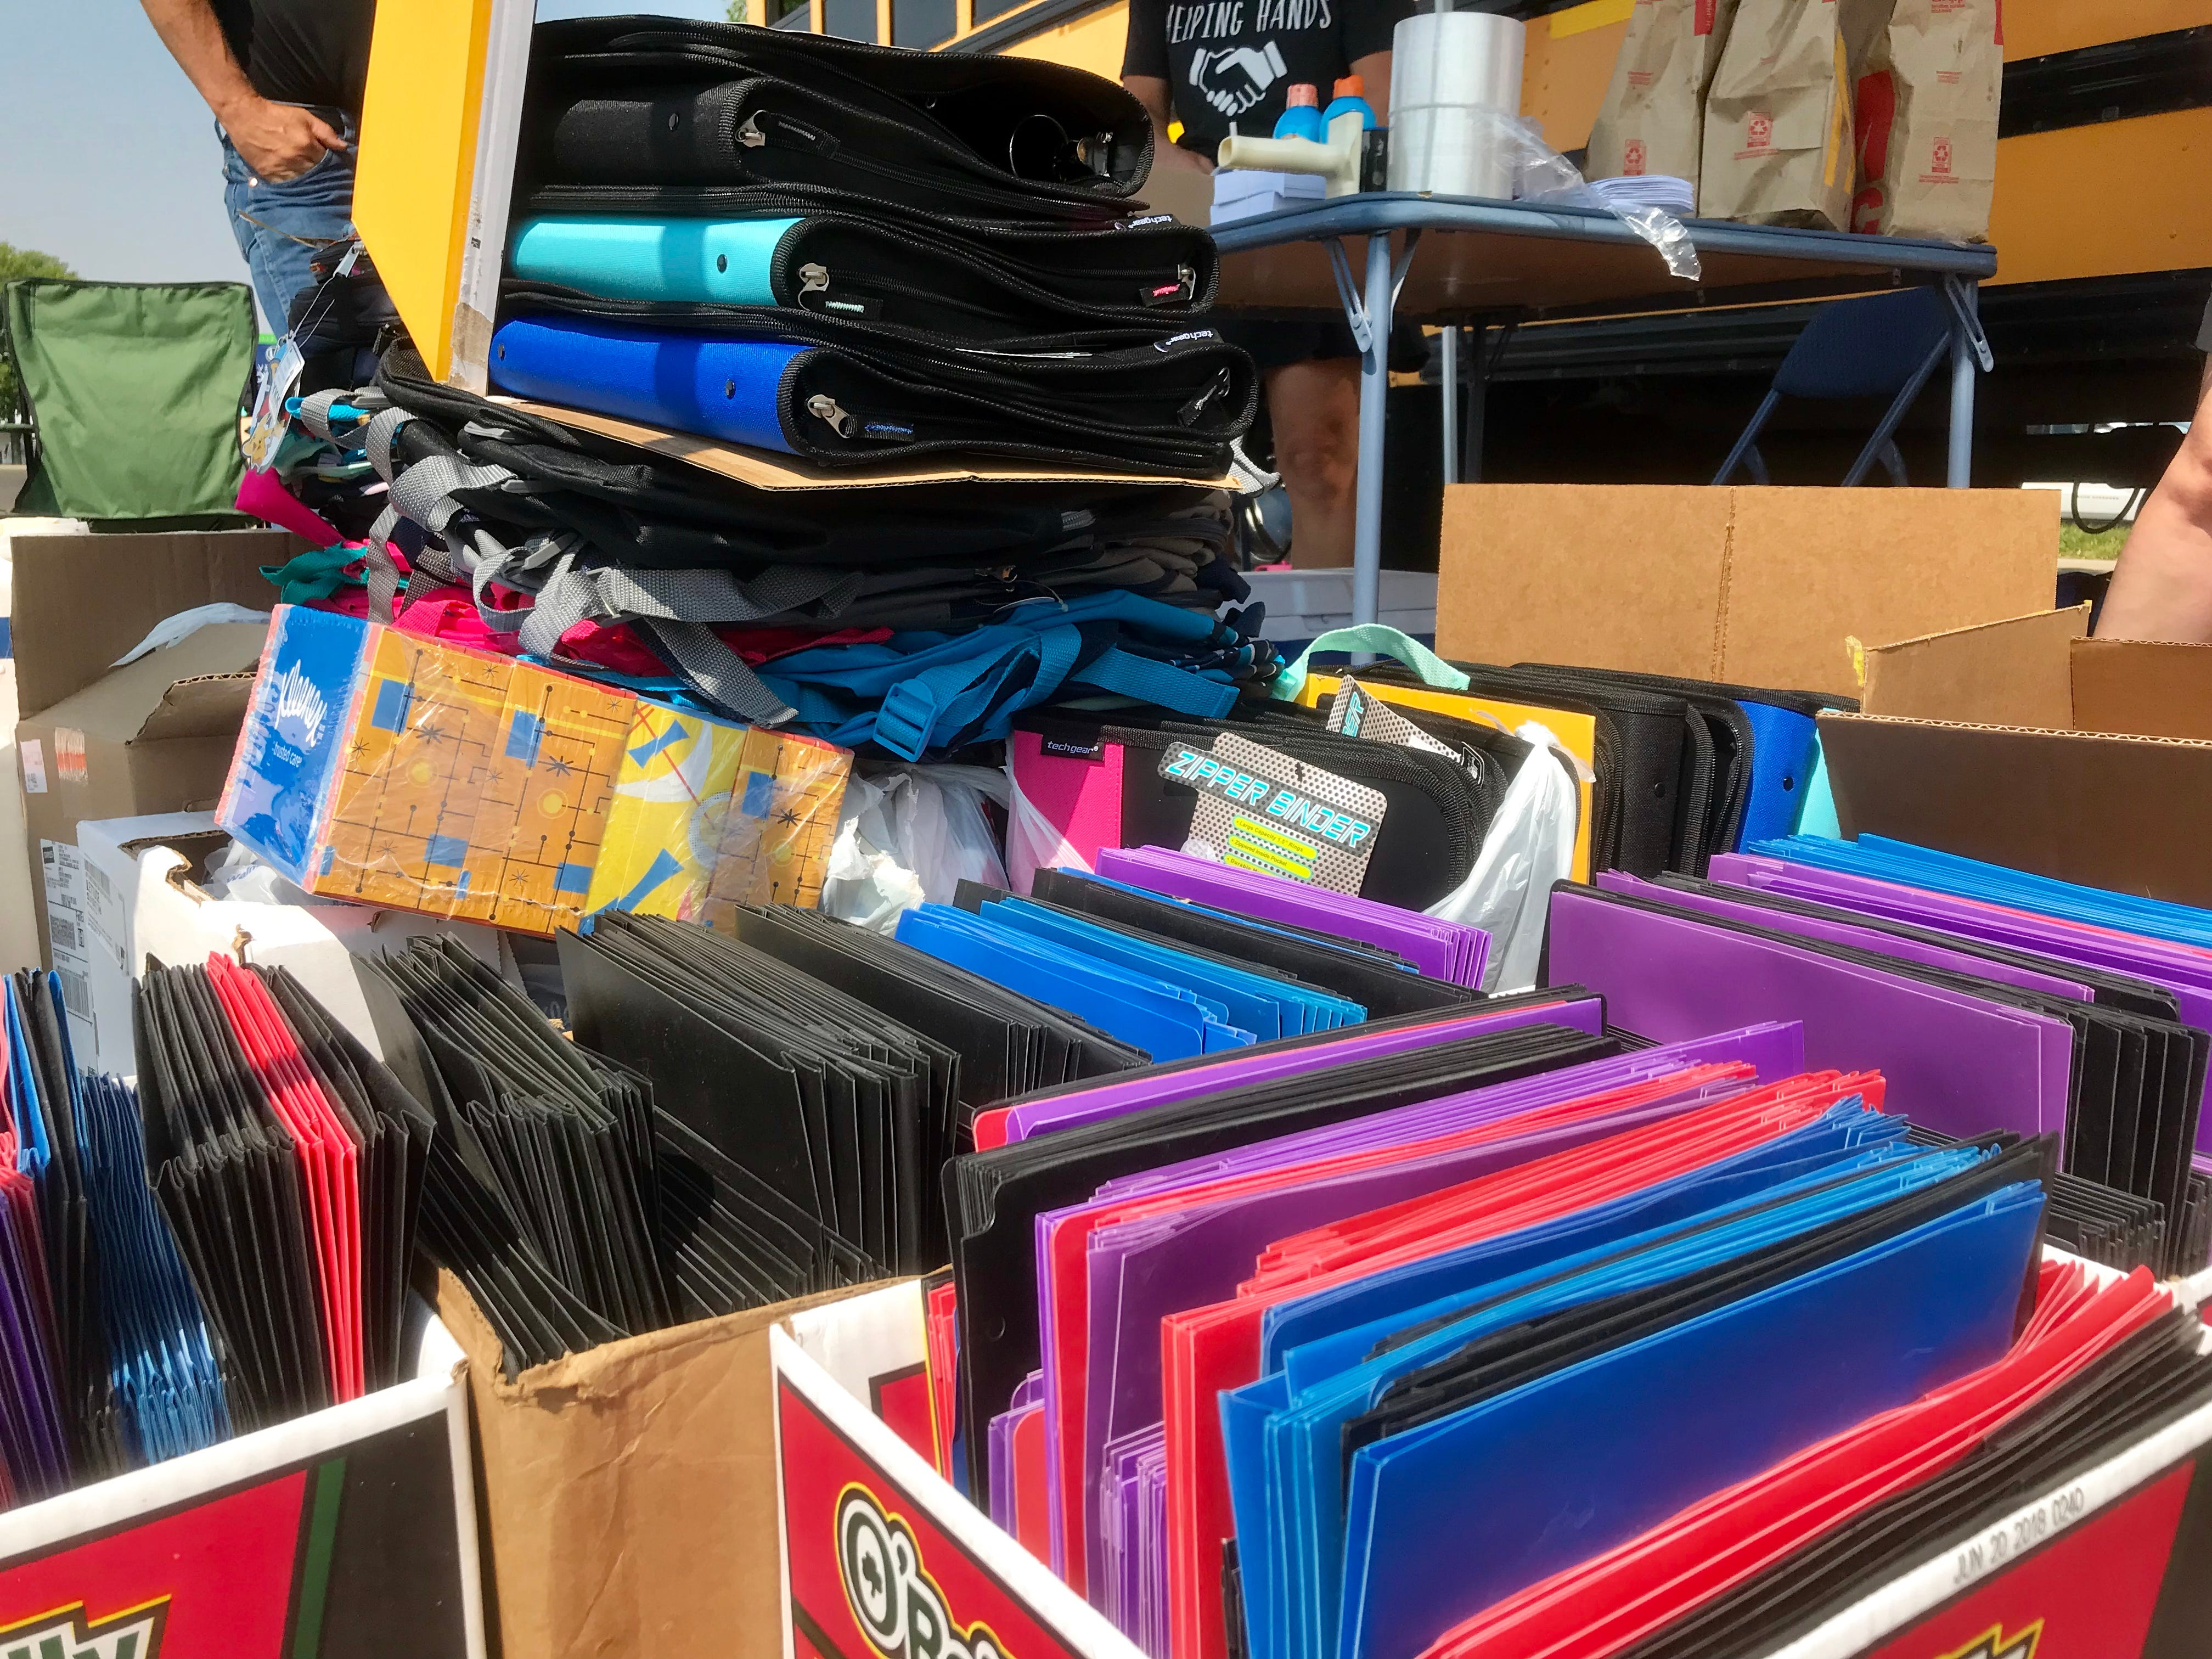 The 2018 Stuff the Bus campaign collected school supplies, toiletries and money for local students in need.